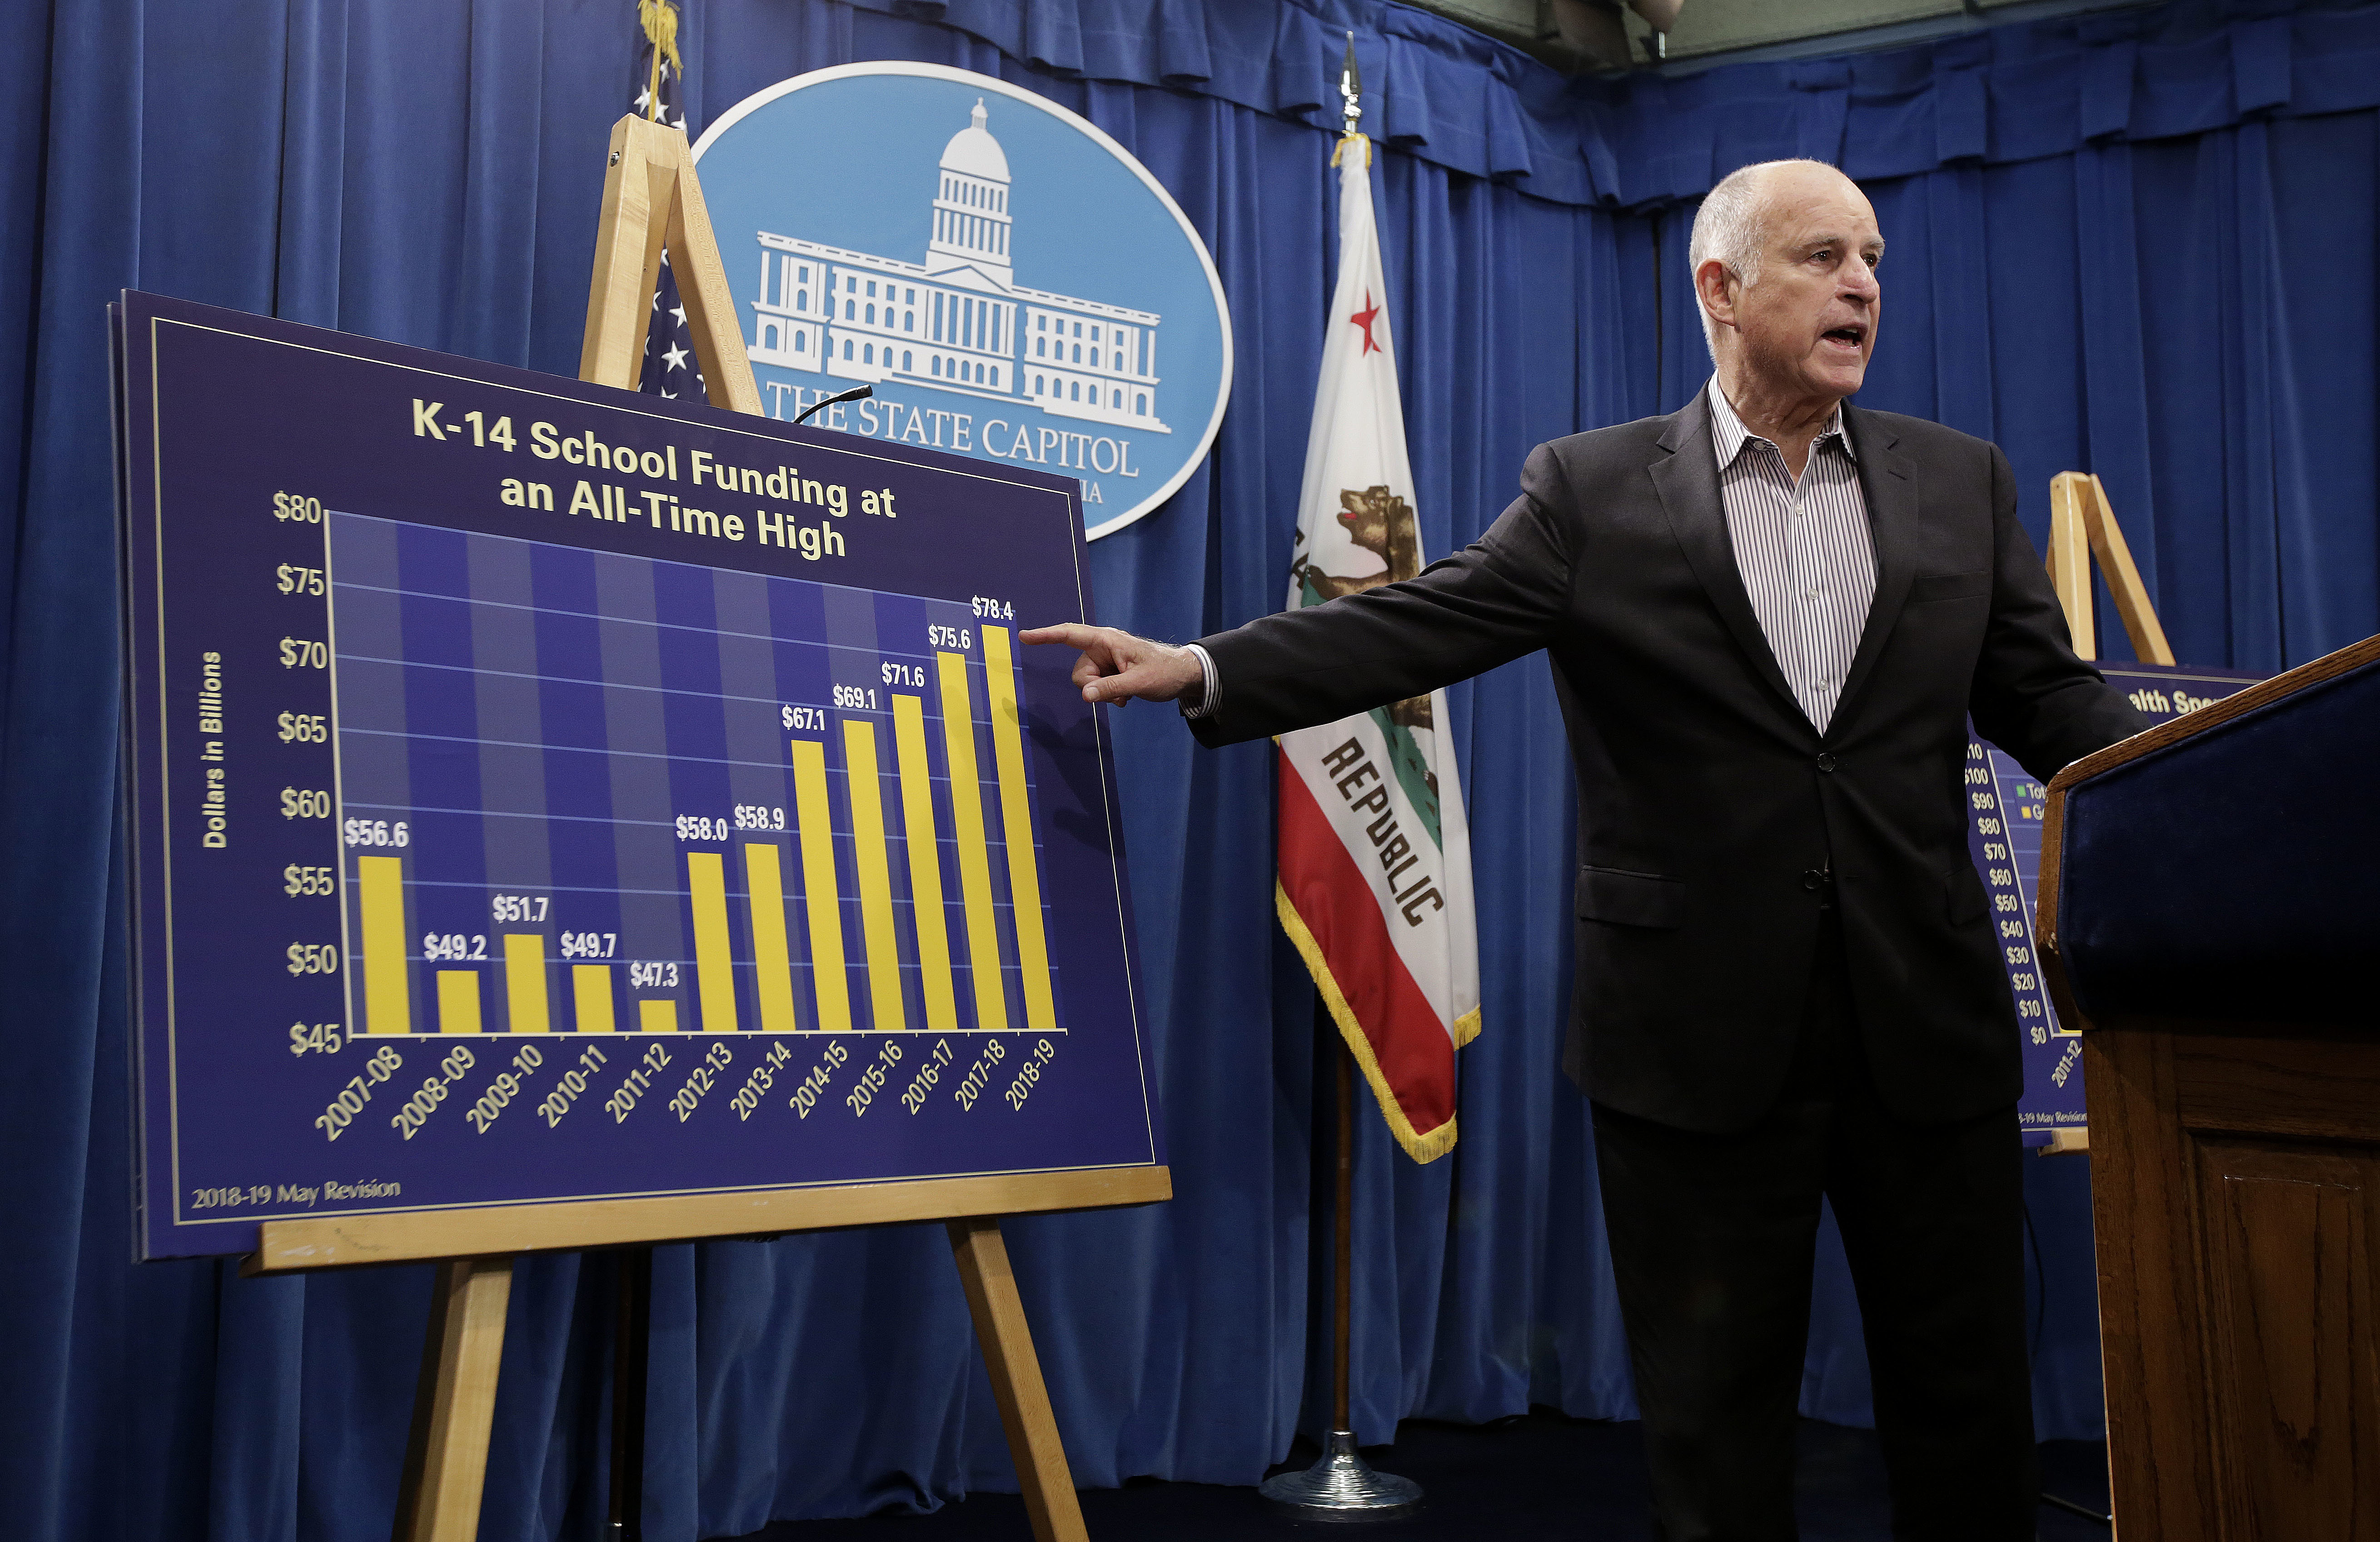 Jerry Brown has an enviable budget surplus - he wants to save it